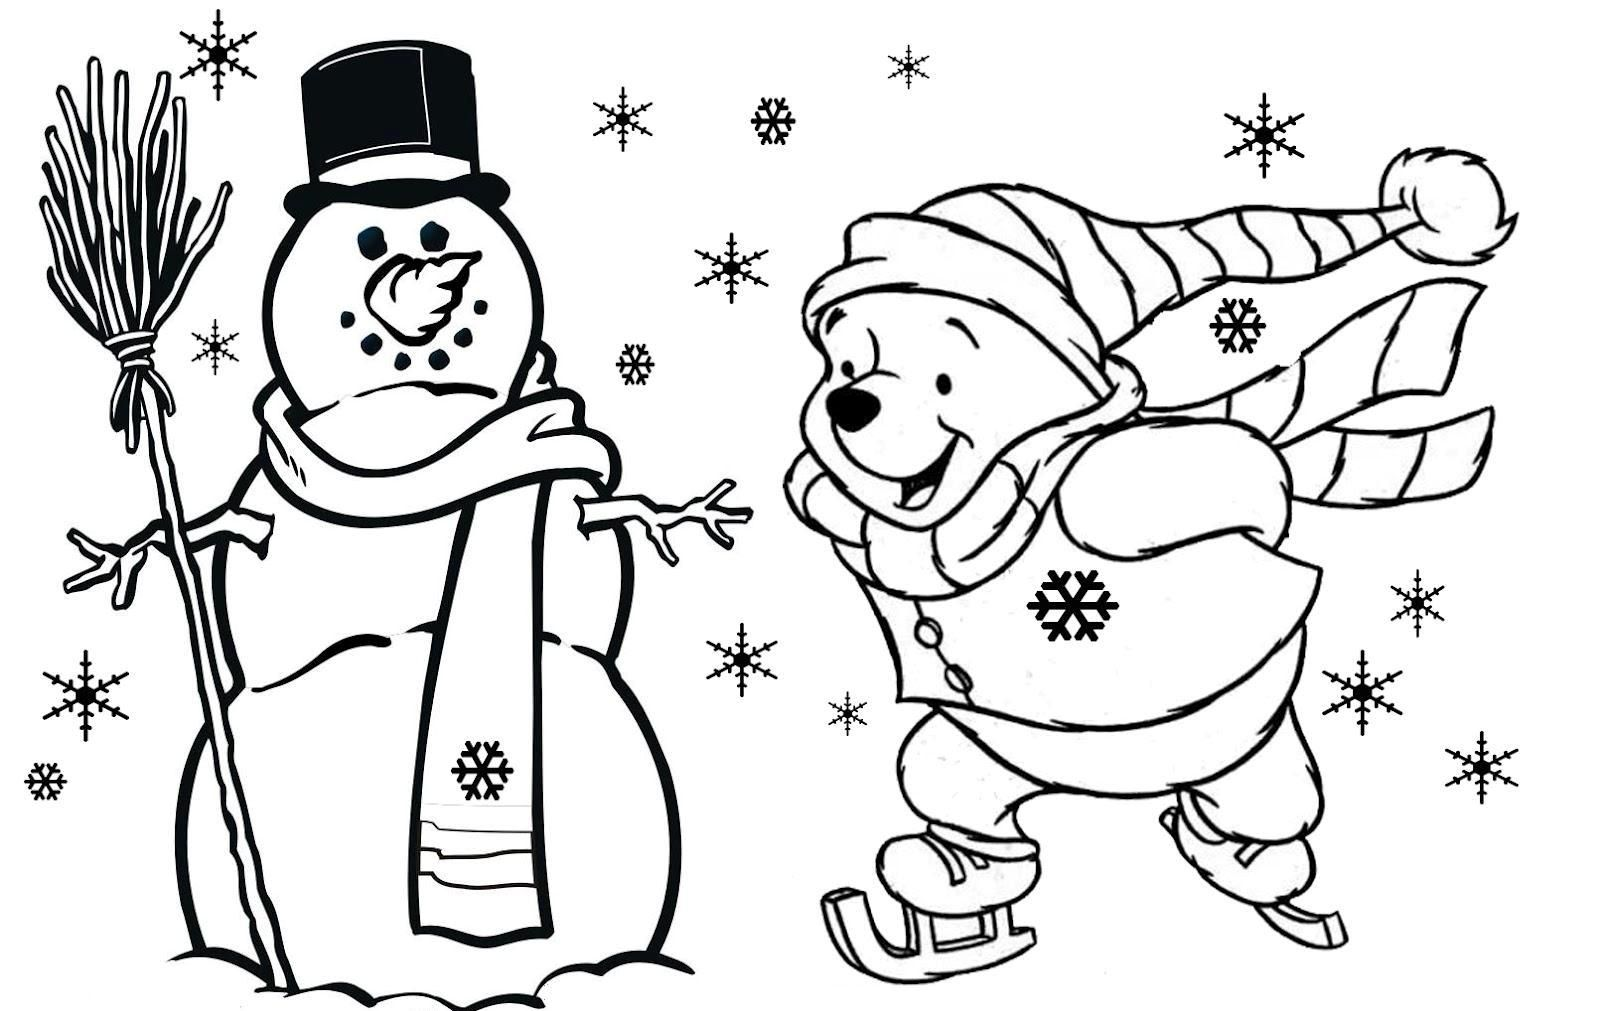 Coloring Pages For Christmas To Print - Coloring Home